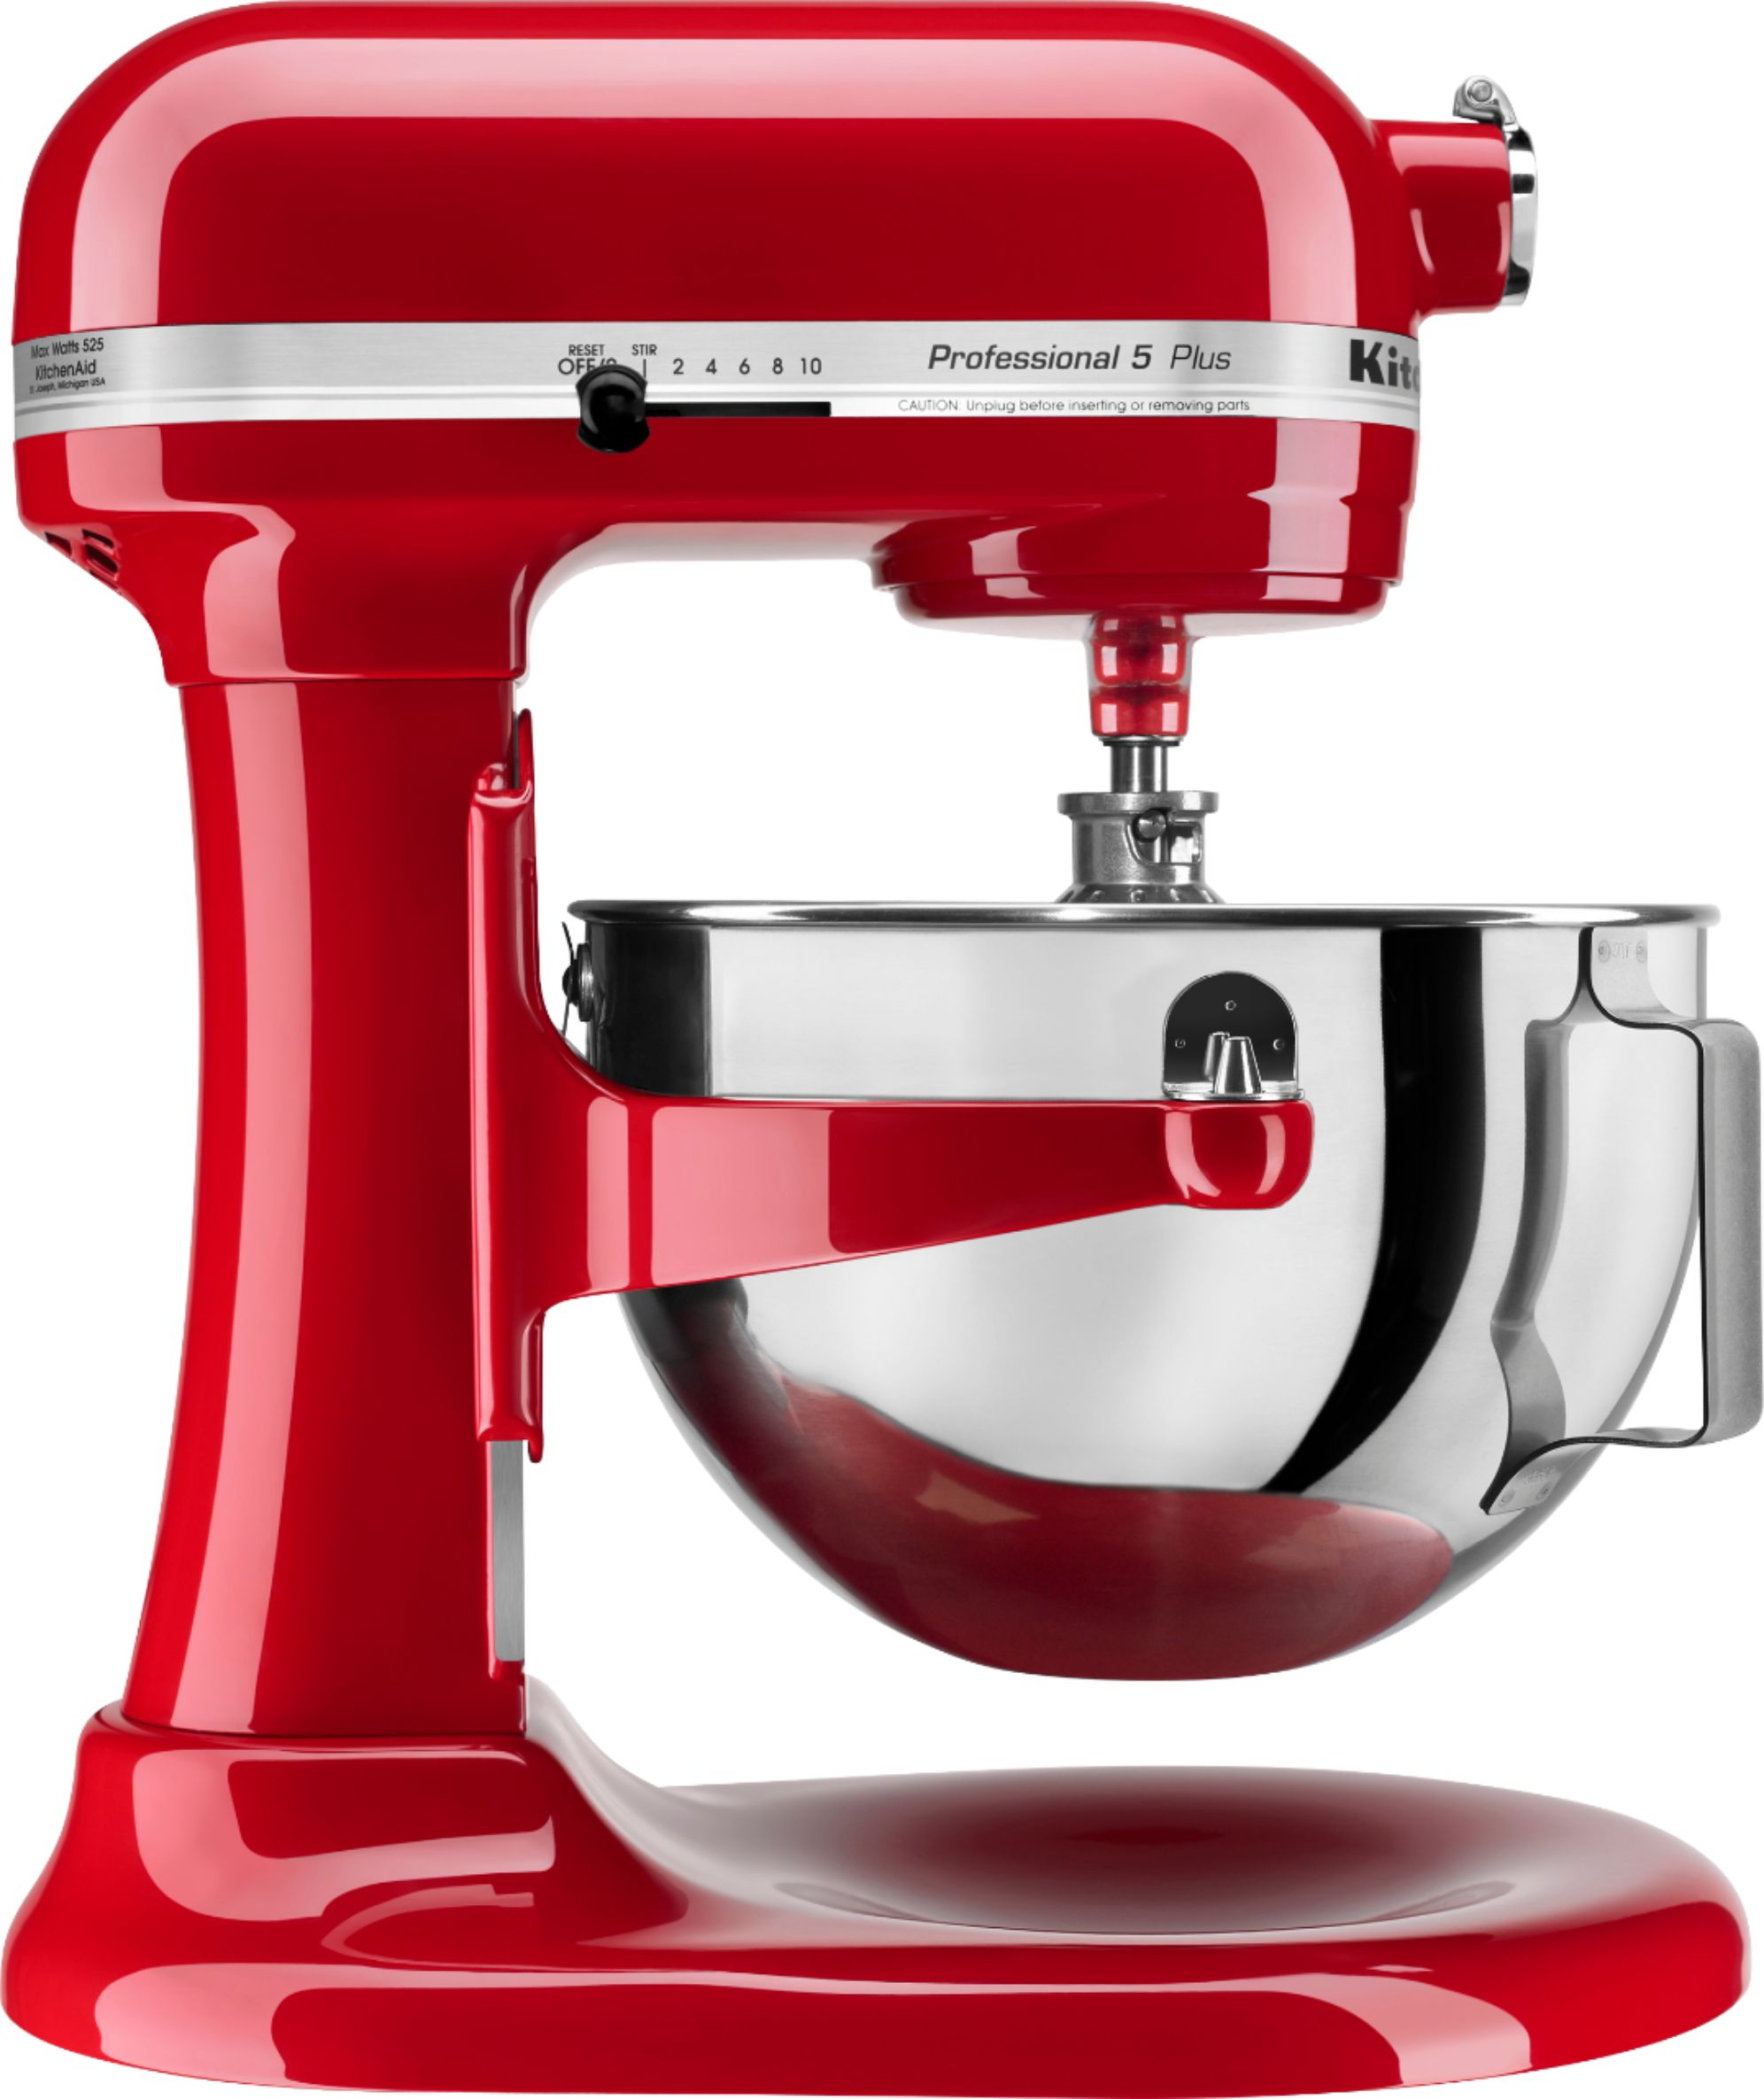 KitchenAid KV25G0XER Professional 500 Series Stand Mixer Empire Red KV25G0XER  Best Buy